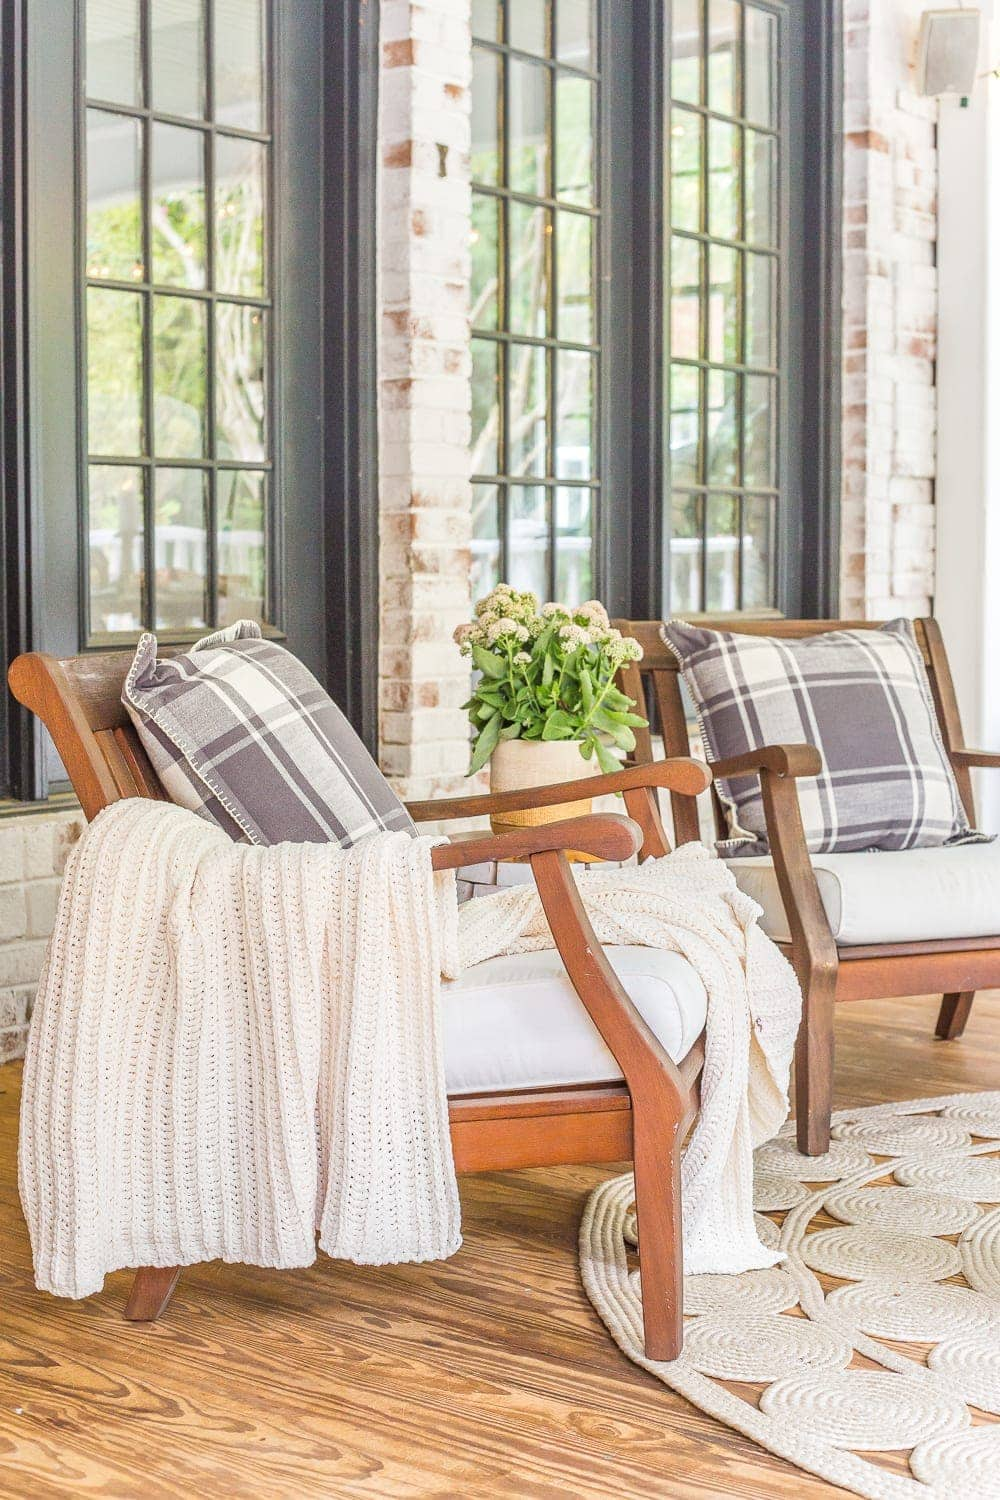 outdoor decor on back porch for fall